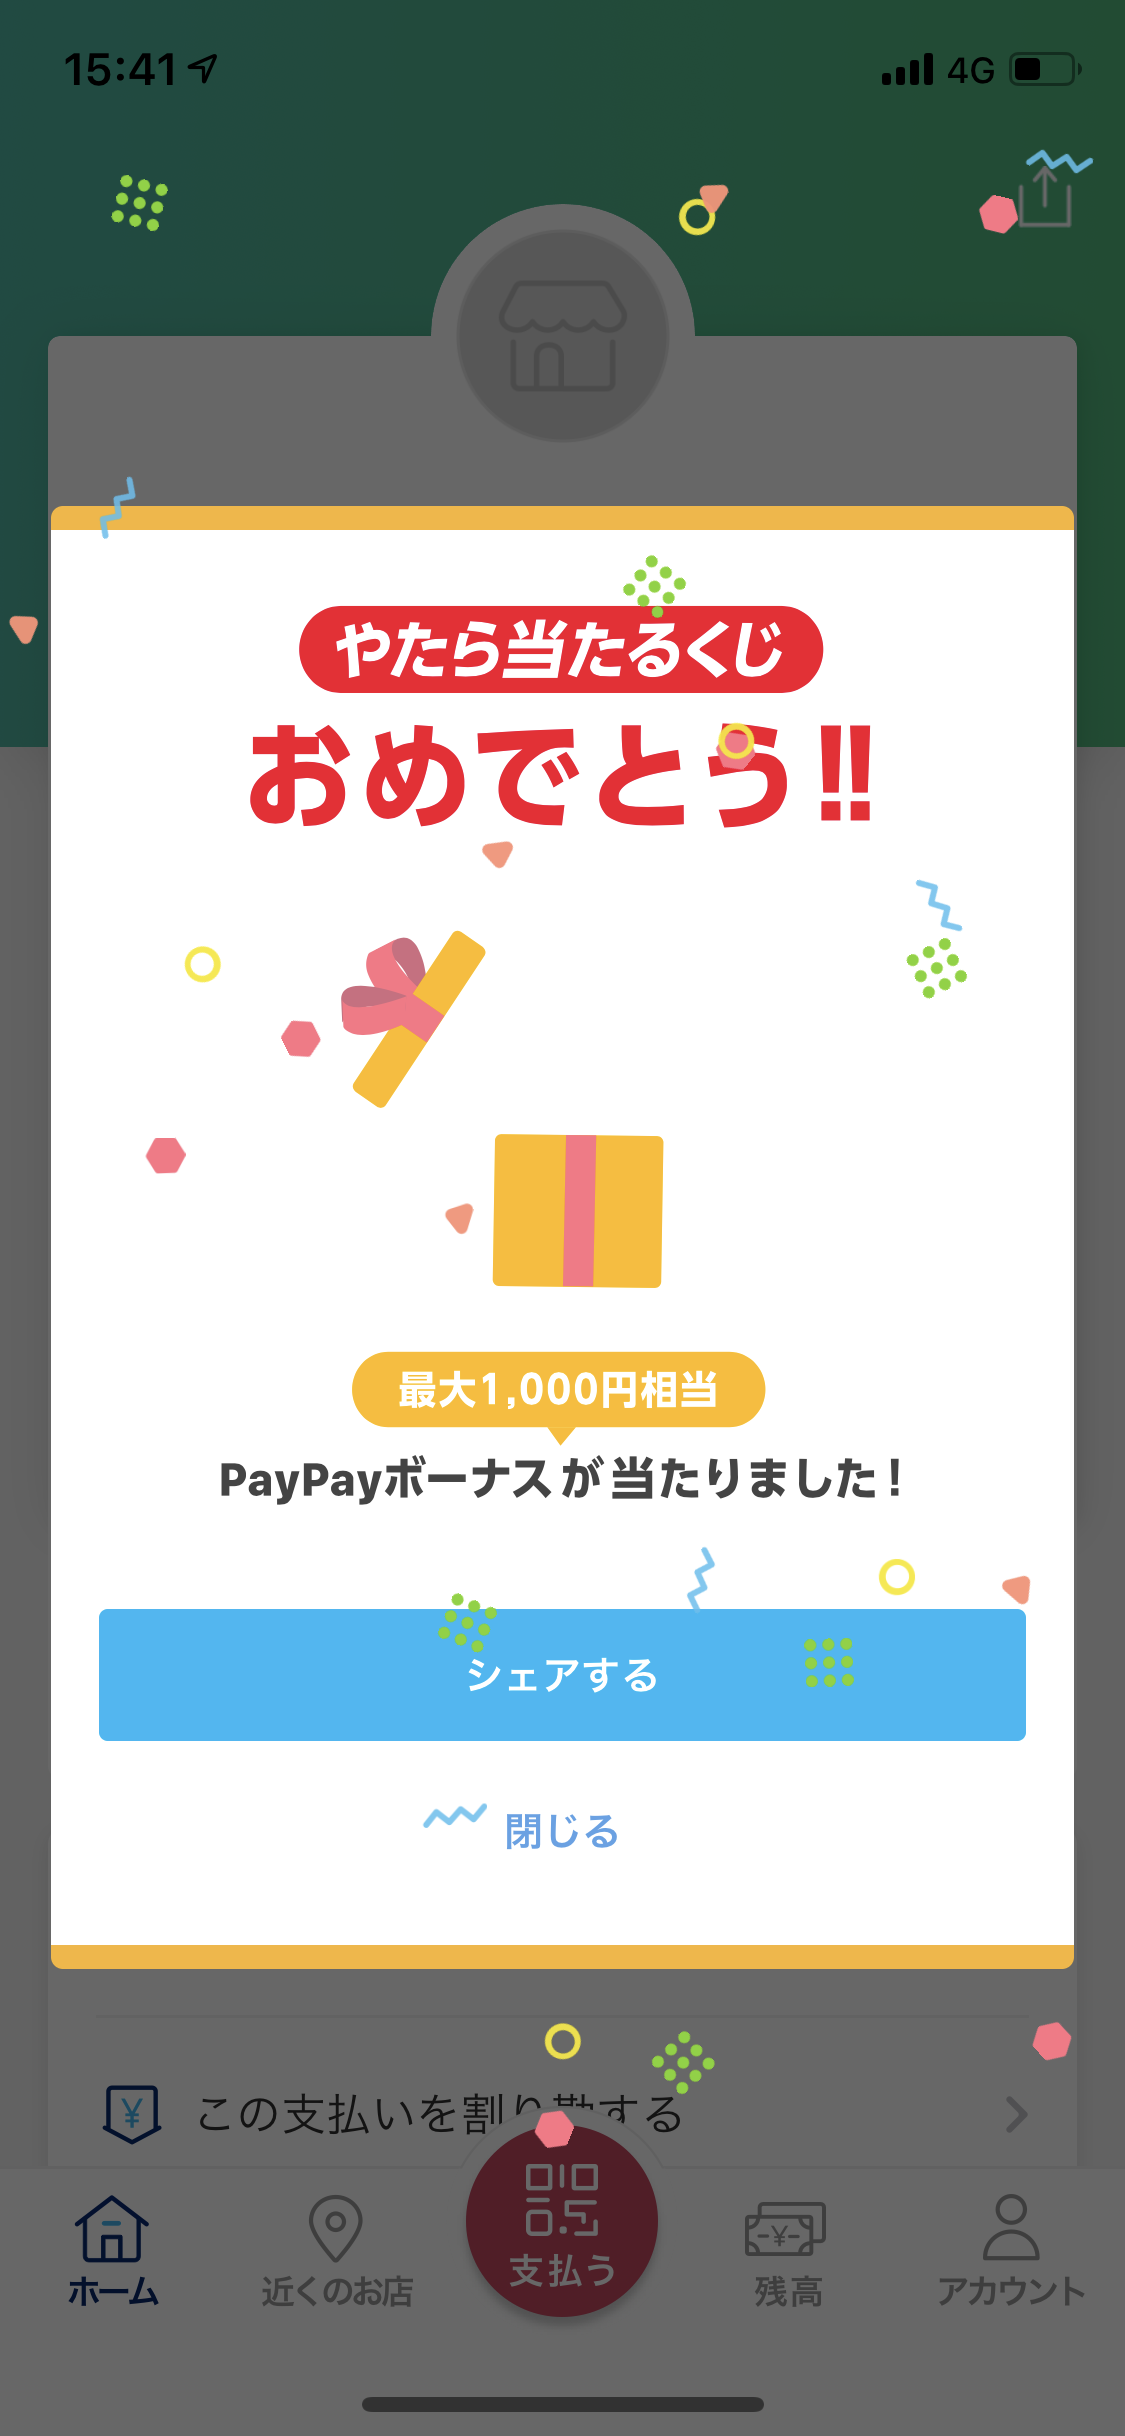 PayPay当たり画面